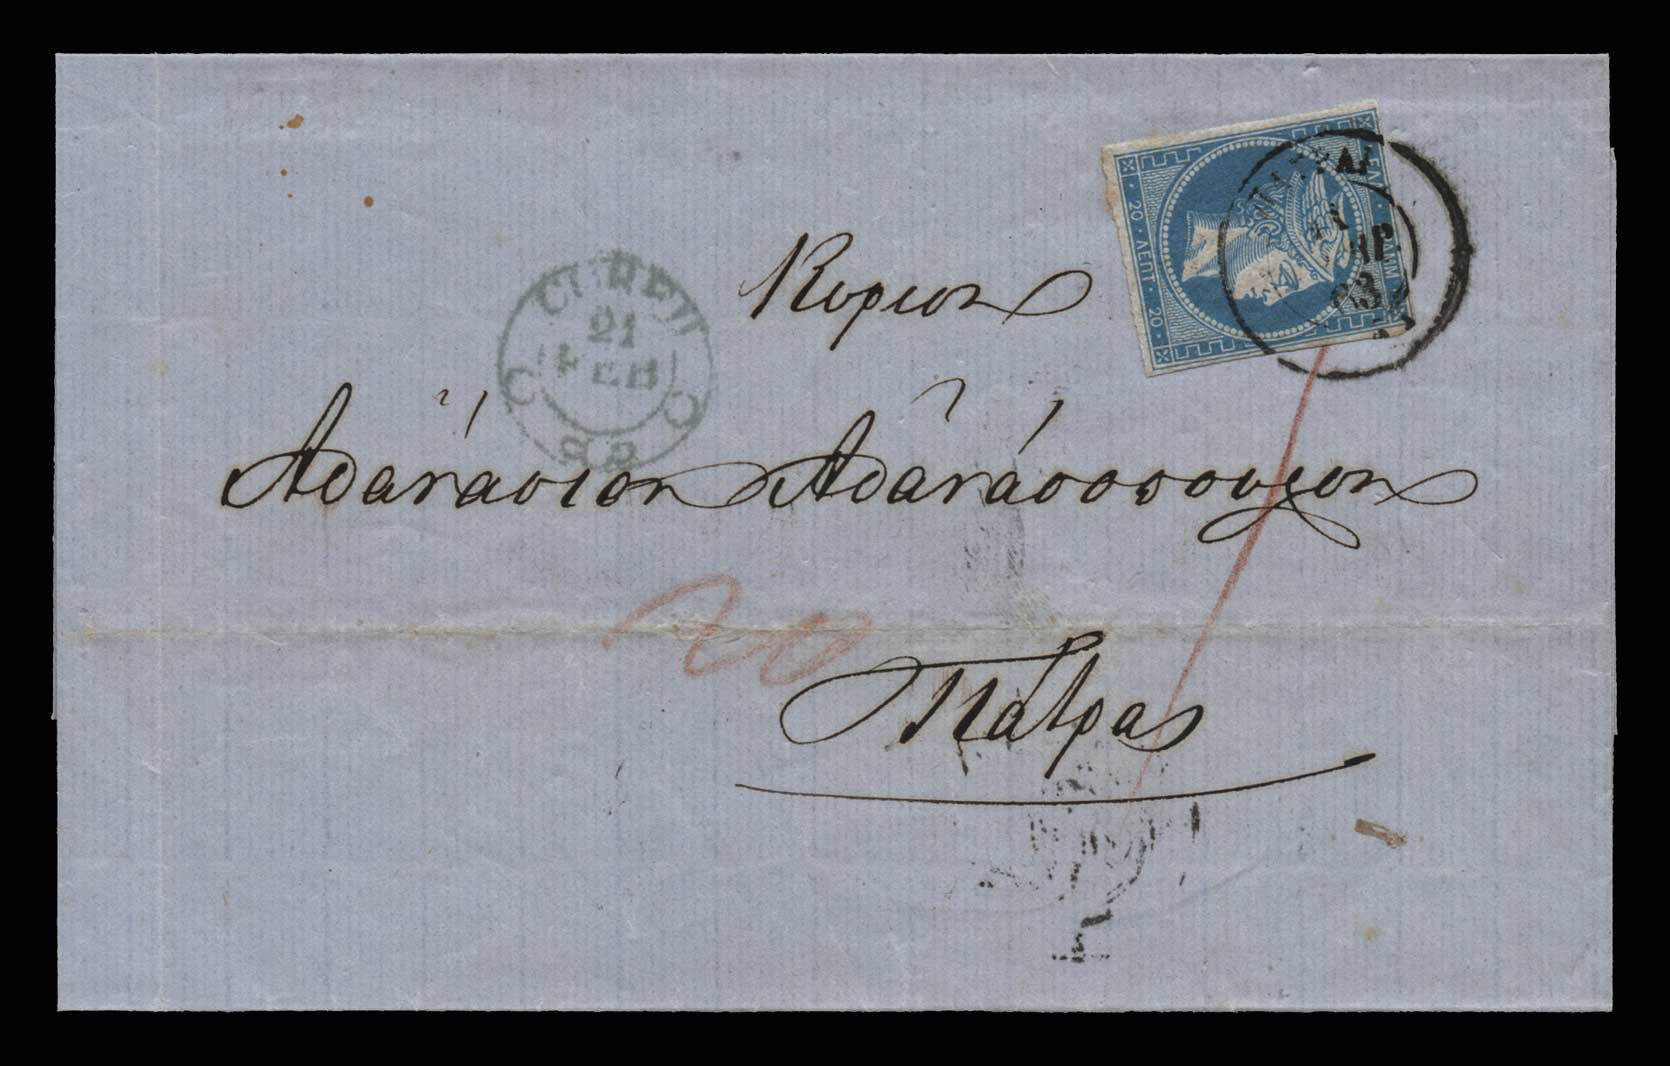 Lot 156 - -  LARGE HERMES HEAD 1862/67 consecutive athens printings -  Athens Auctions Public Auction 89 General Stamp Sale